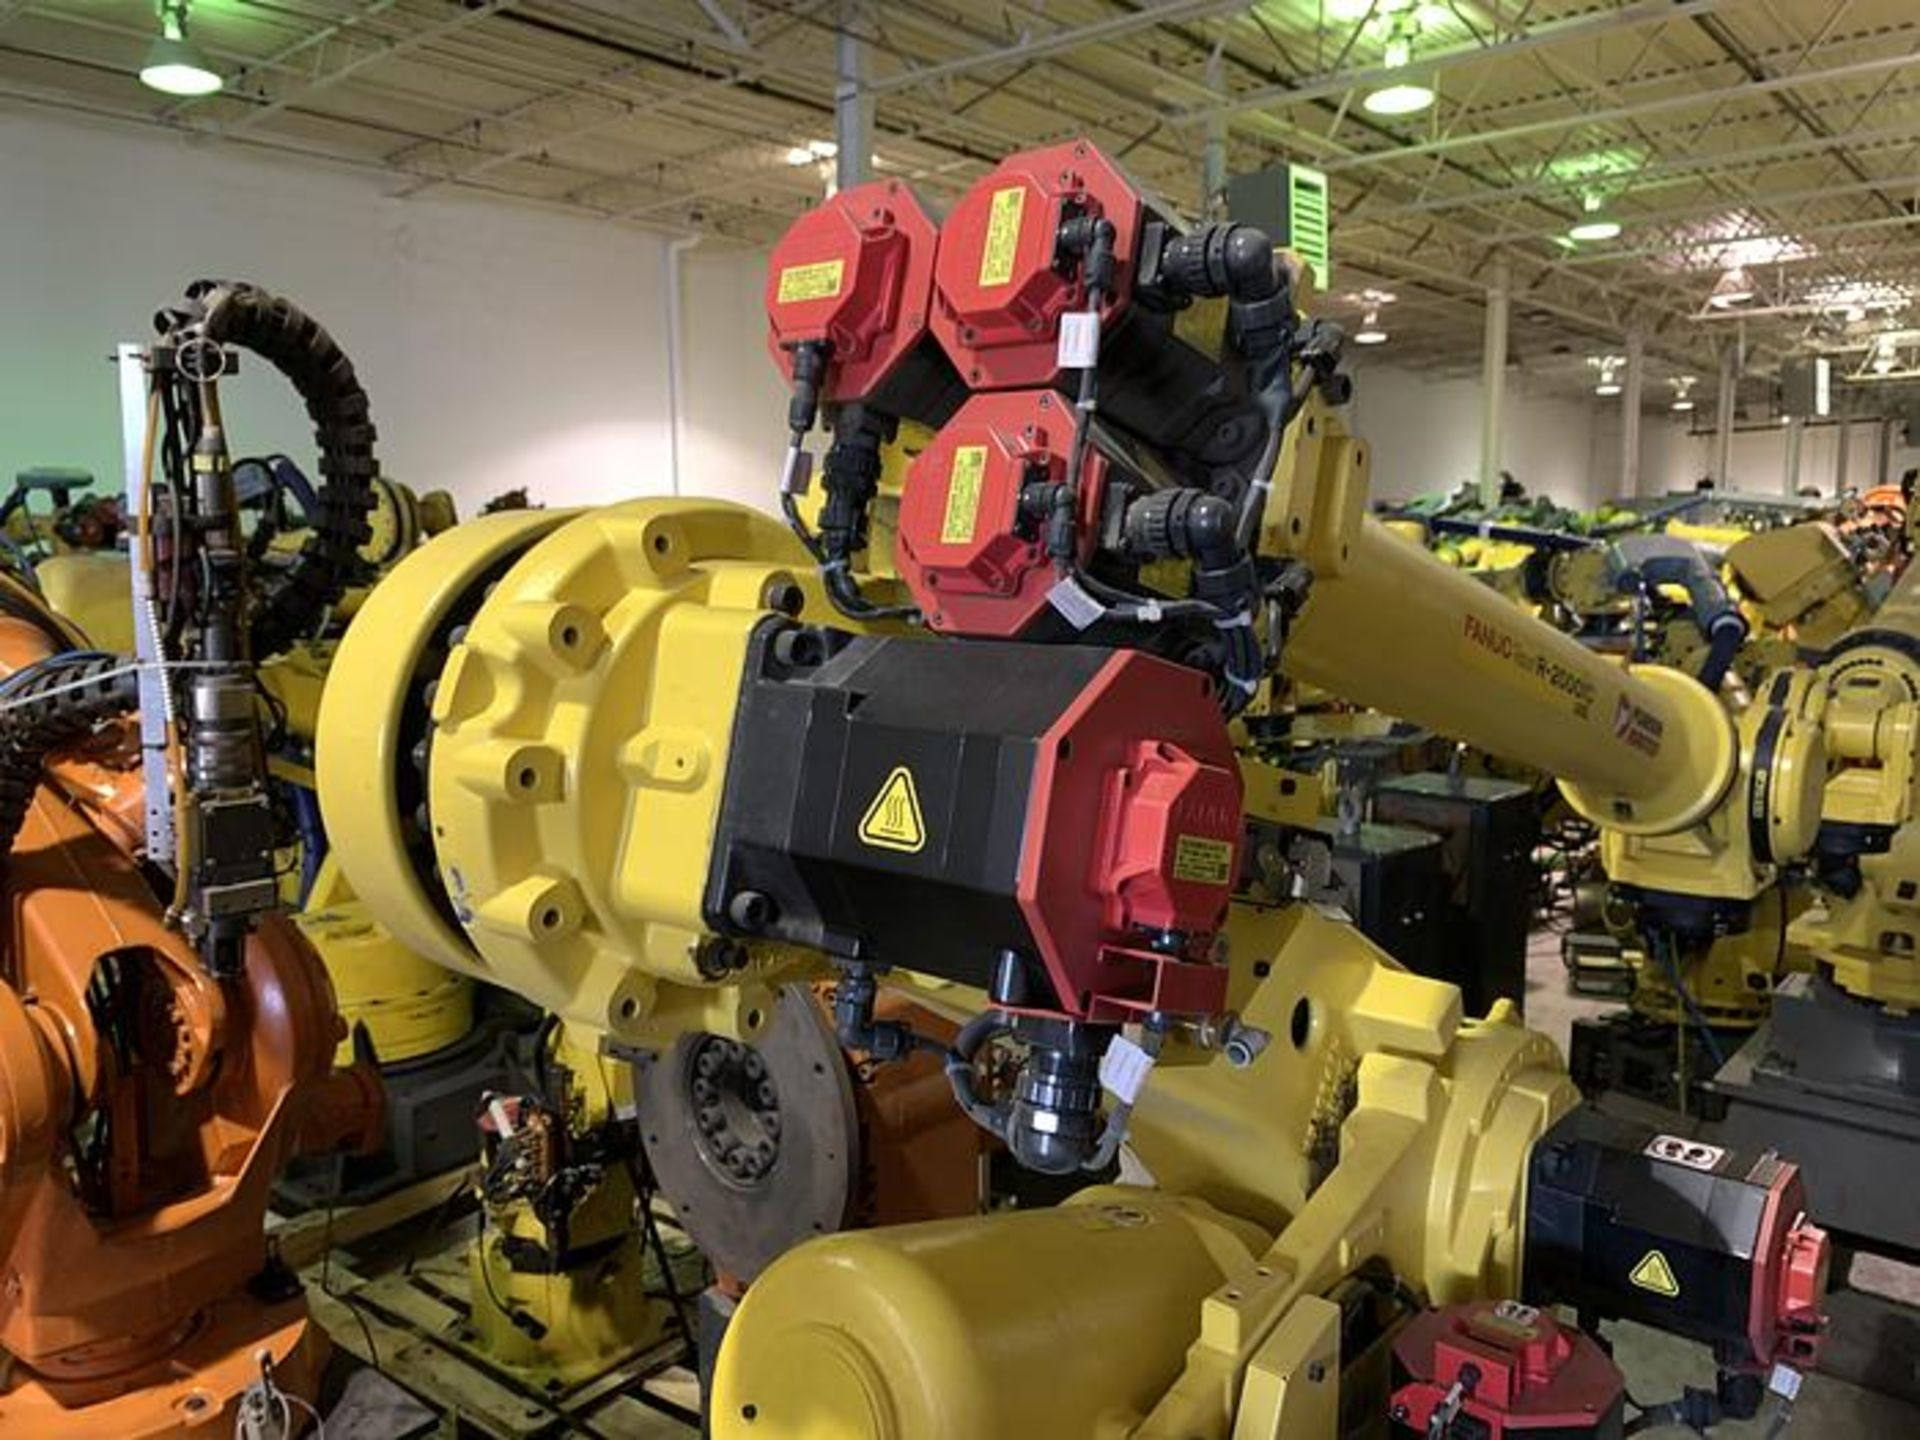 FANUC R2000iC/125L 6 AXIS CNC ROBOT WITH R30iB CONTROLLER, IR VISION, CABLES & REACH - Image 4 of 17